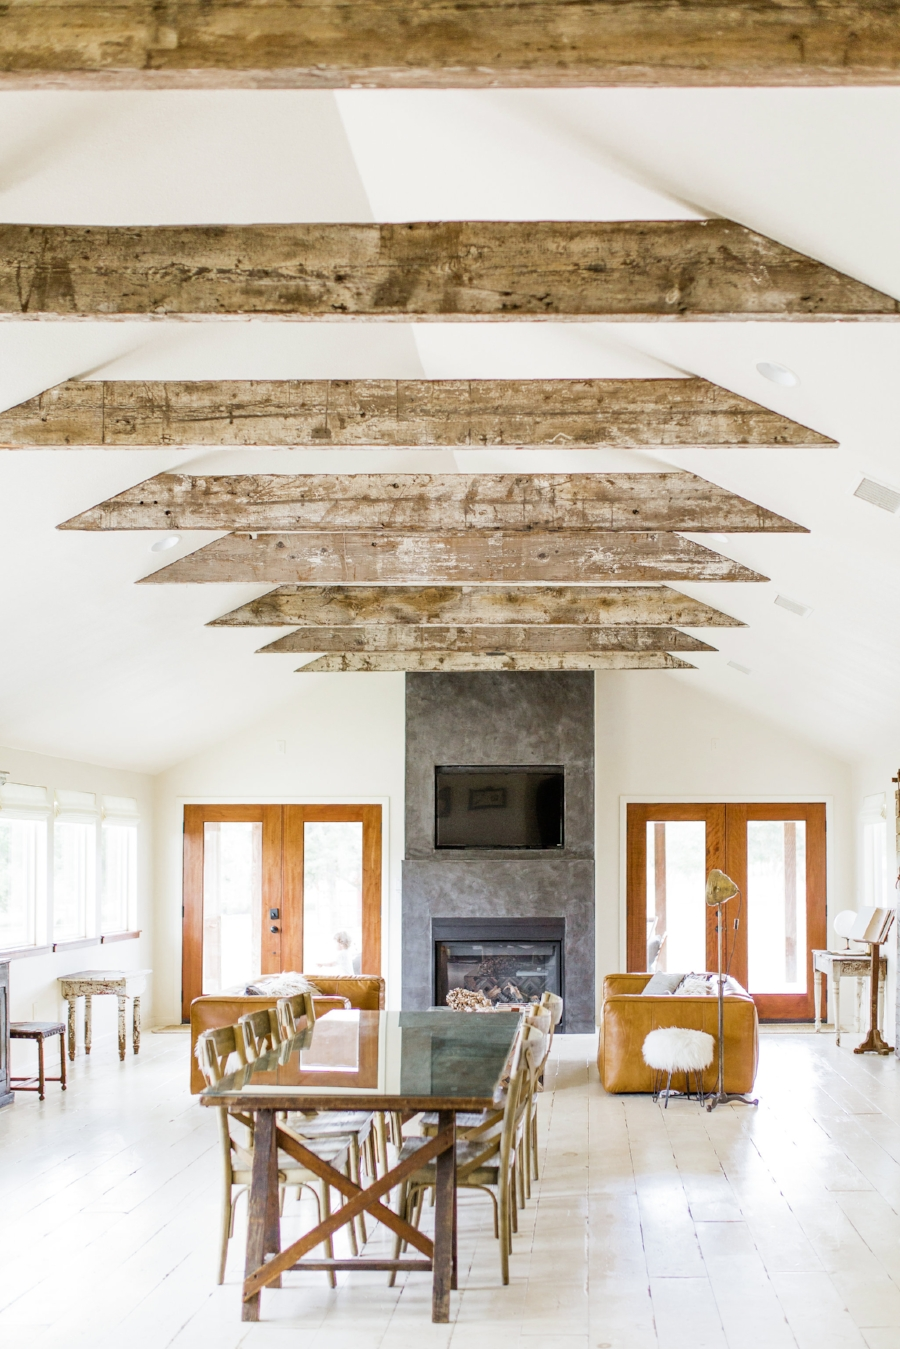 Home Decorating Tips for Beginners, Buy this Not That Boho Modern Farmhouse Style Exposed Wooden Beams